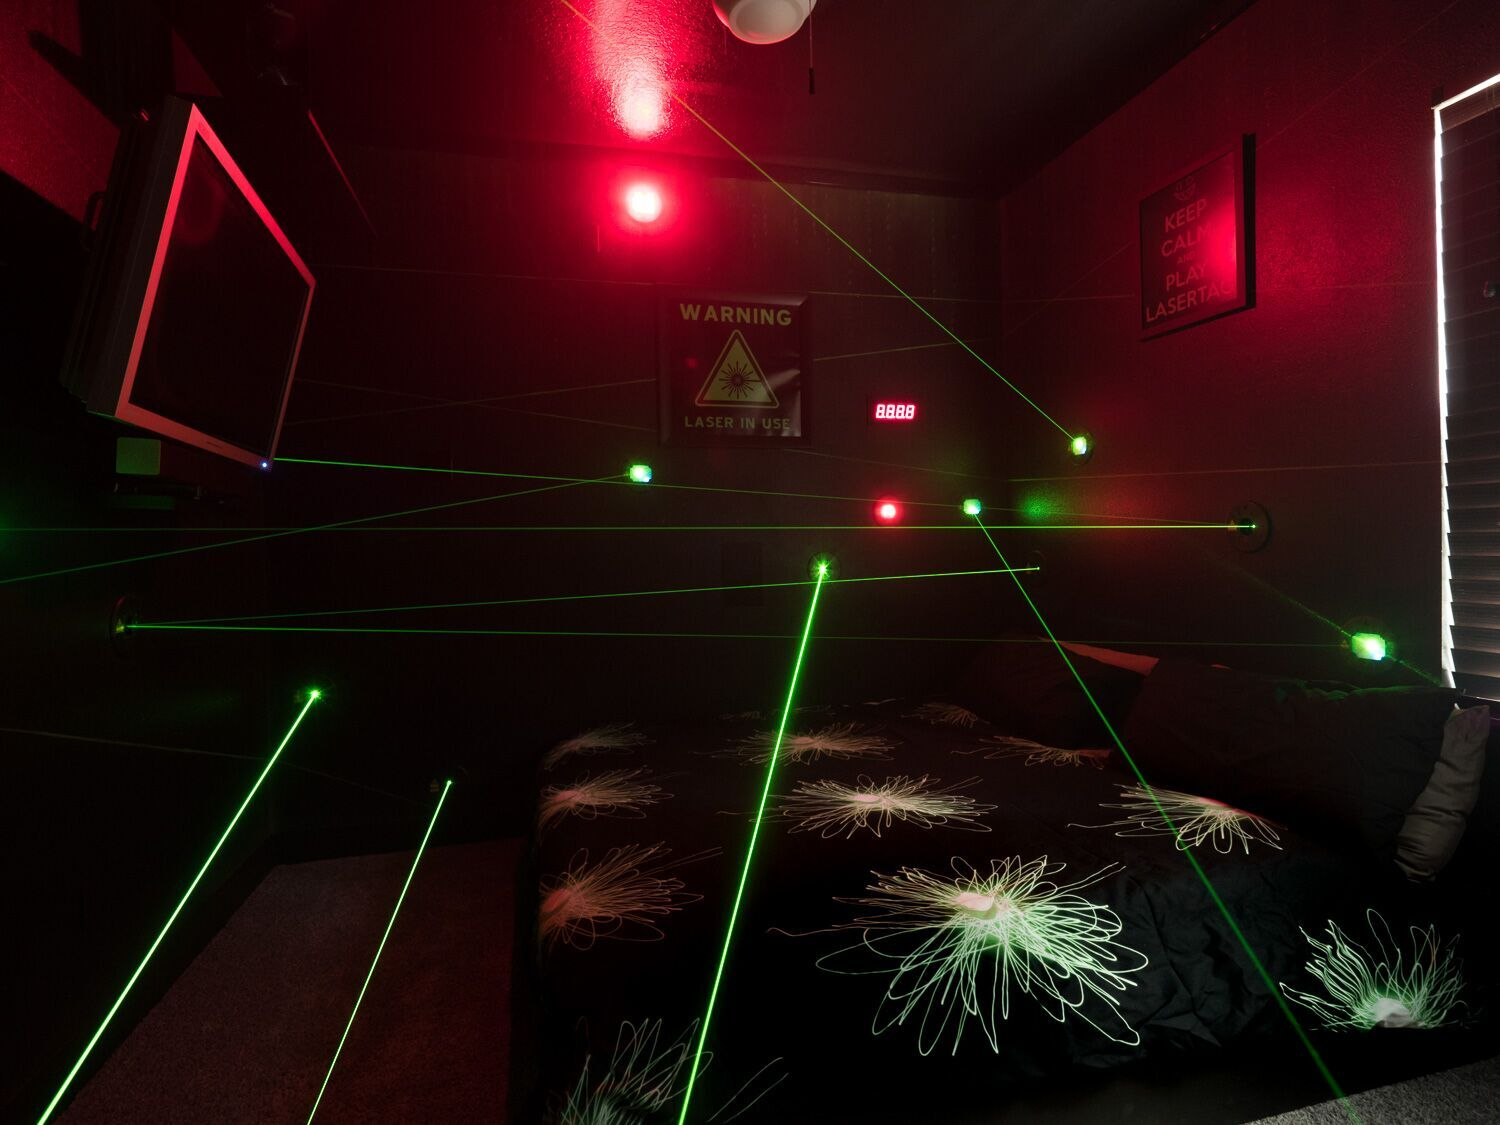 Sleep under lasers at The Great Escape Lakeside vacation rental